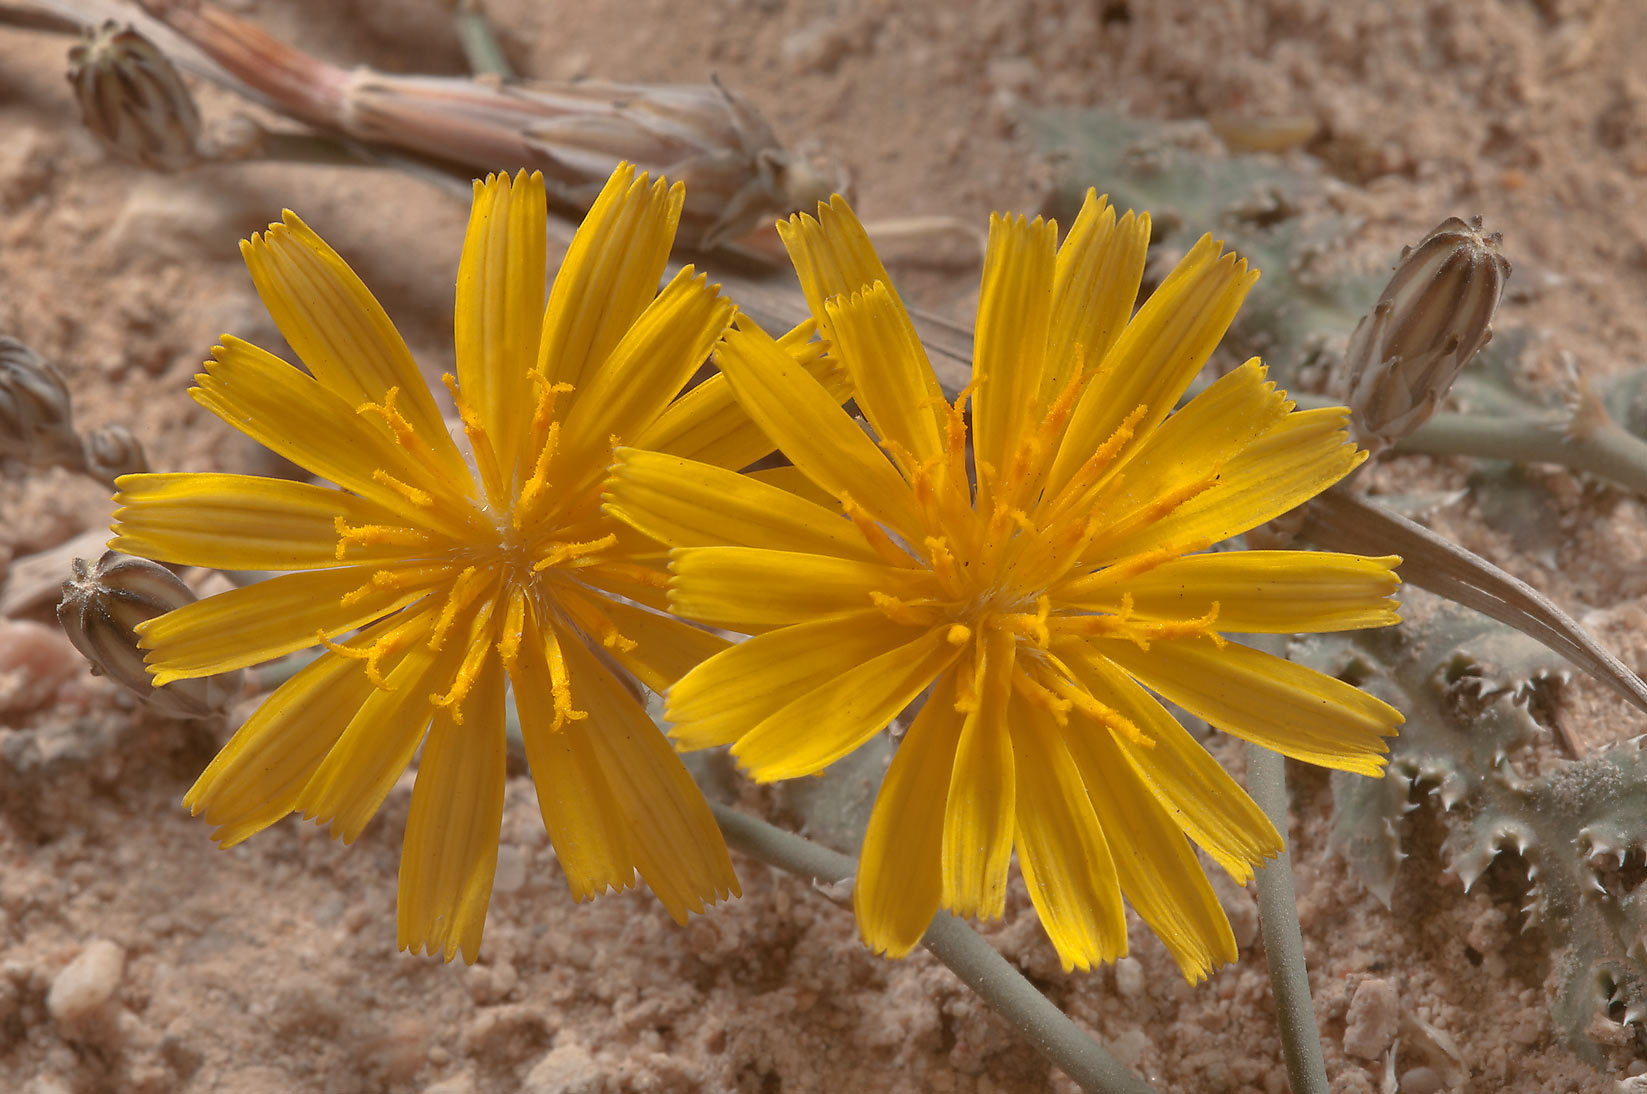 Flower of Launaea mucronata (local name Huwa ghazal) near Al Ruwais (Shamal Rd.). Qatar